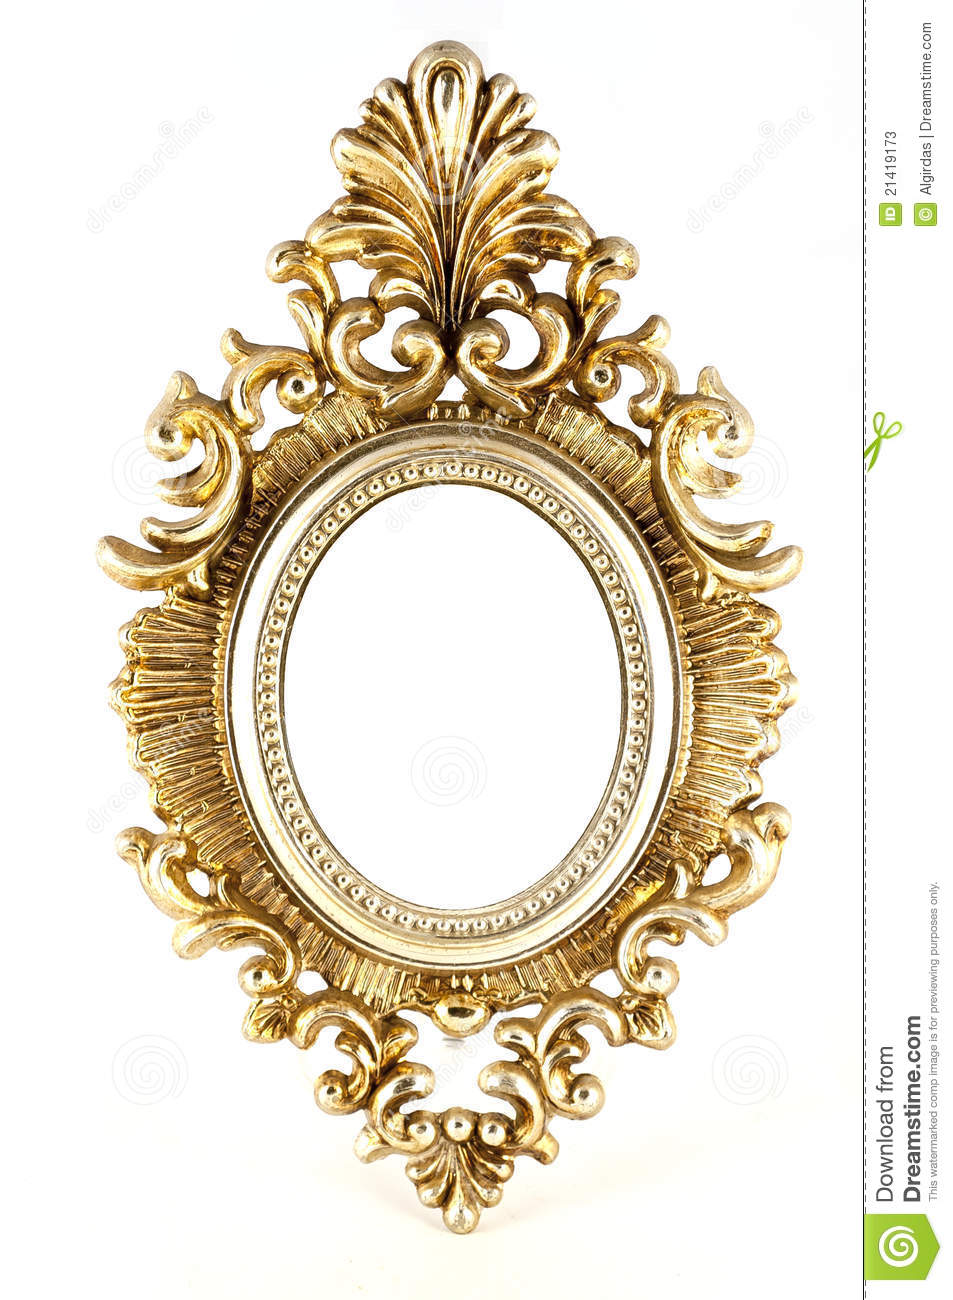 Vintage Gold Picture Round Frame Stock Photos - Image ...: http://www.dreamstime.com/stock-photos-vintage-gold-picture-round-frame-image21419173